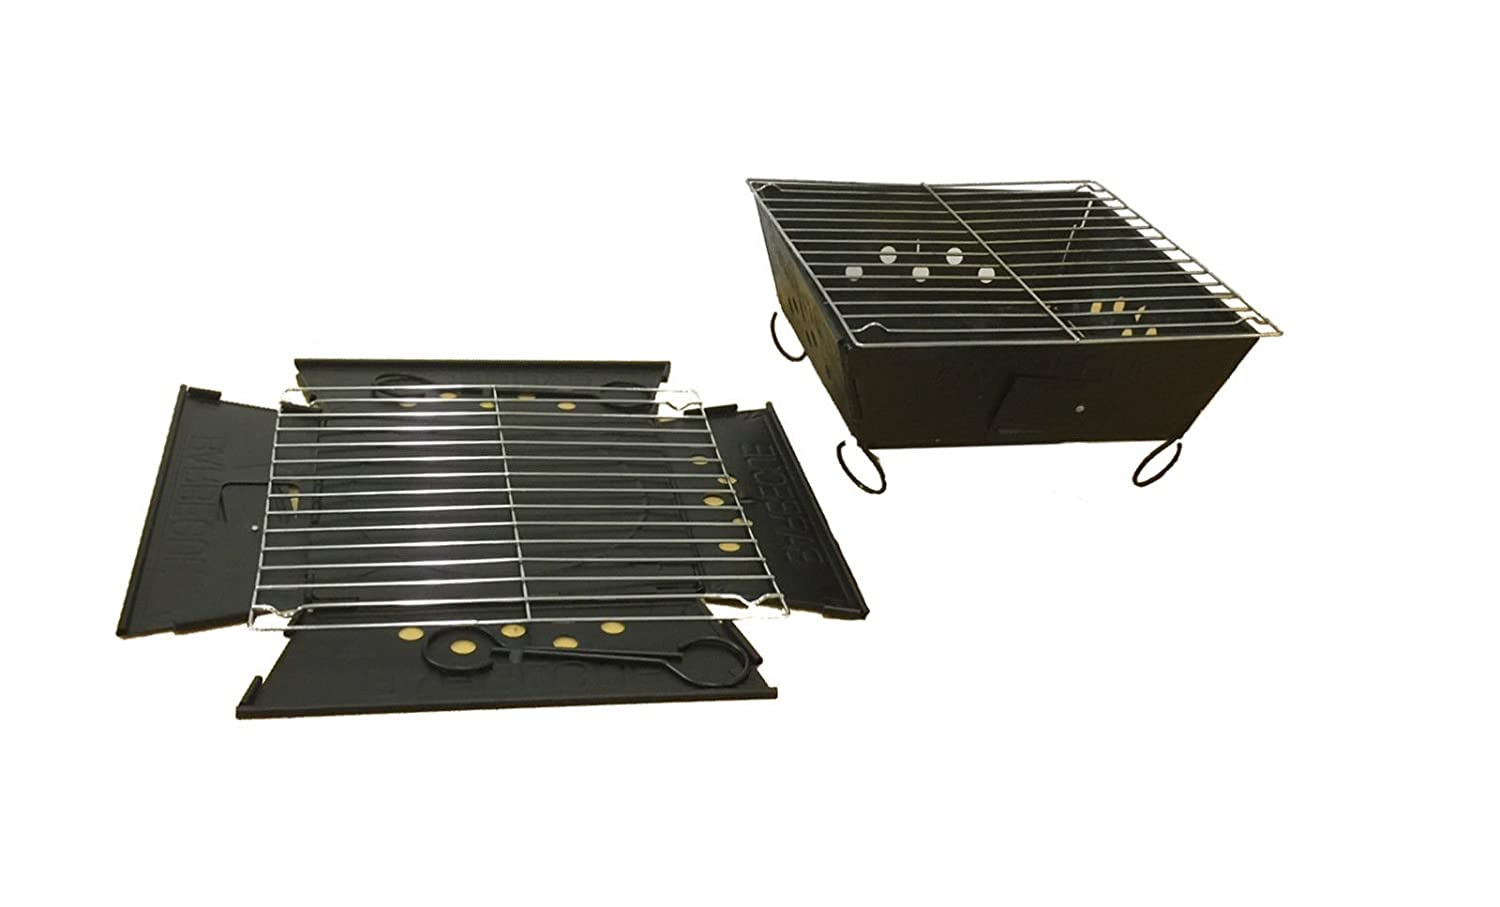 Charcoal grill bbq barbecue flat pack foldable portable for Flat pack garden decking